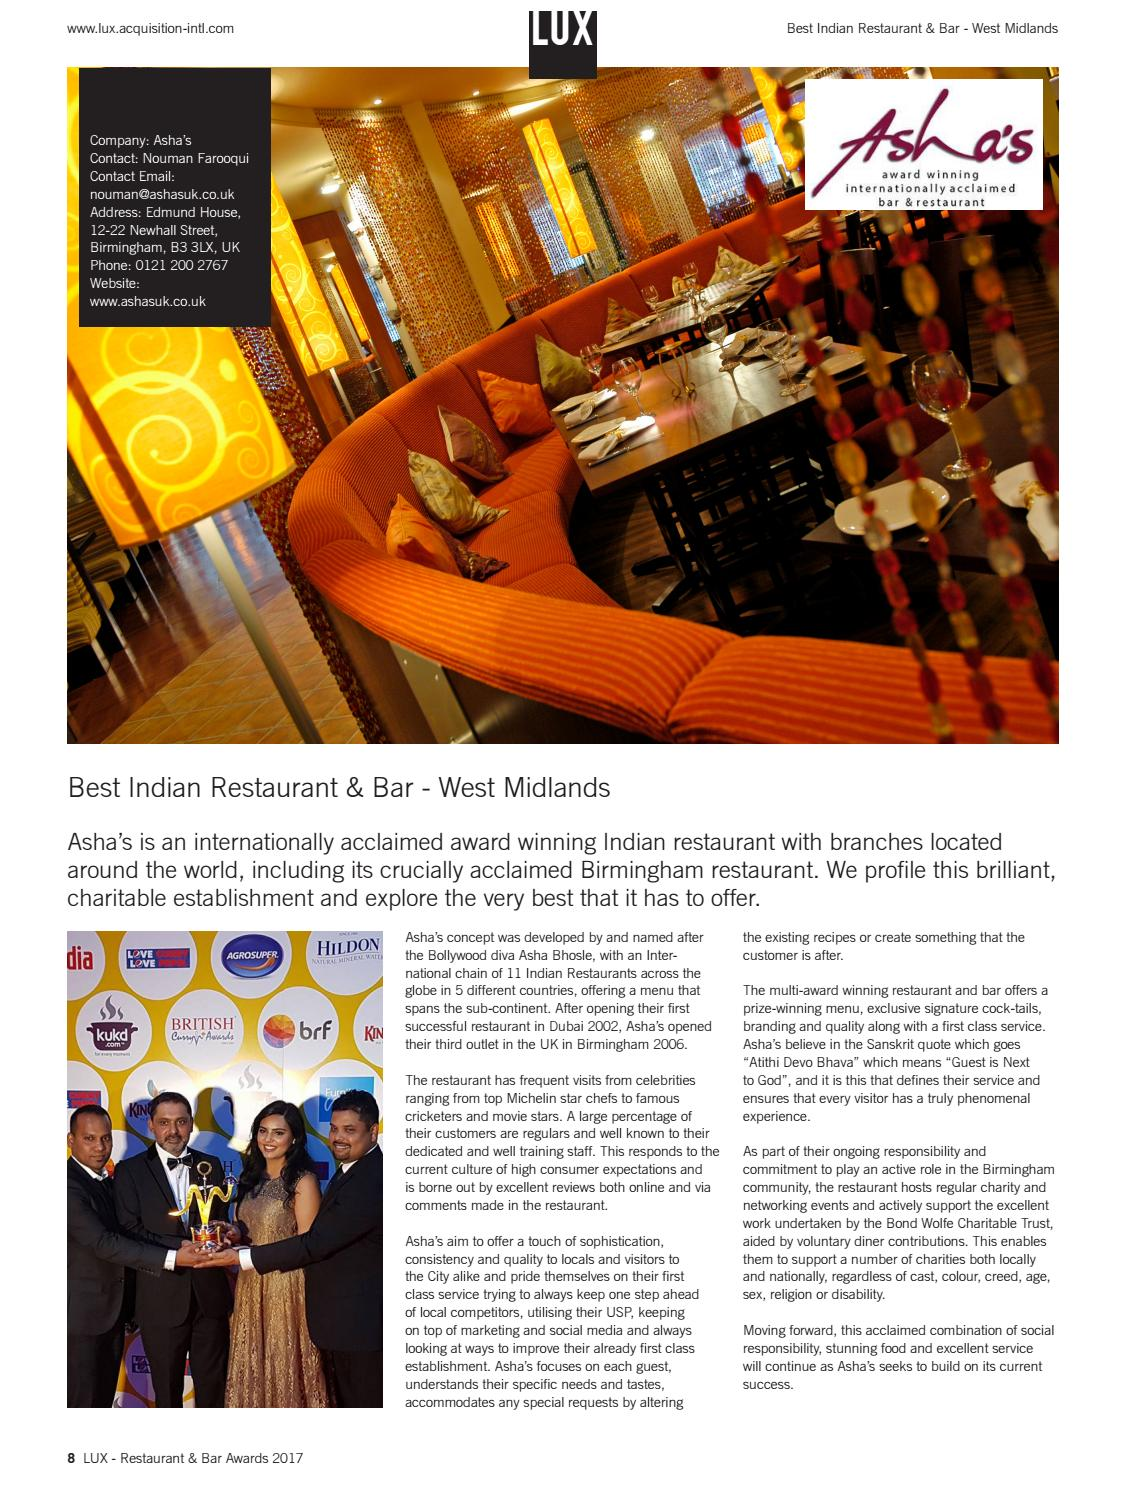 LUX Restaurant & Bar Awards 2017 by AI Global Media - issuu